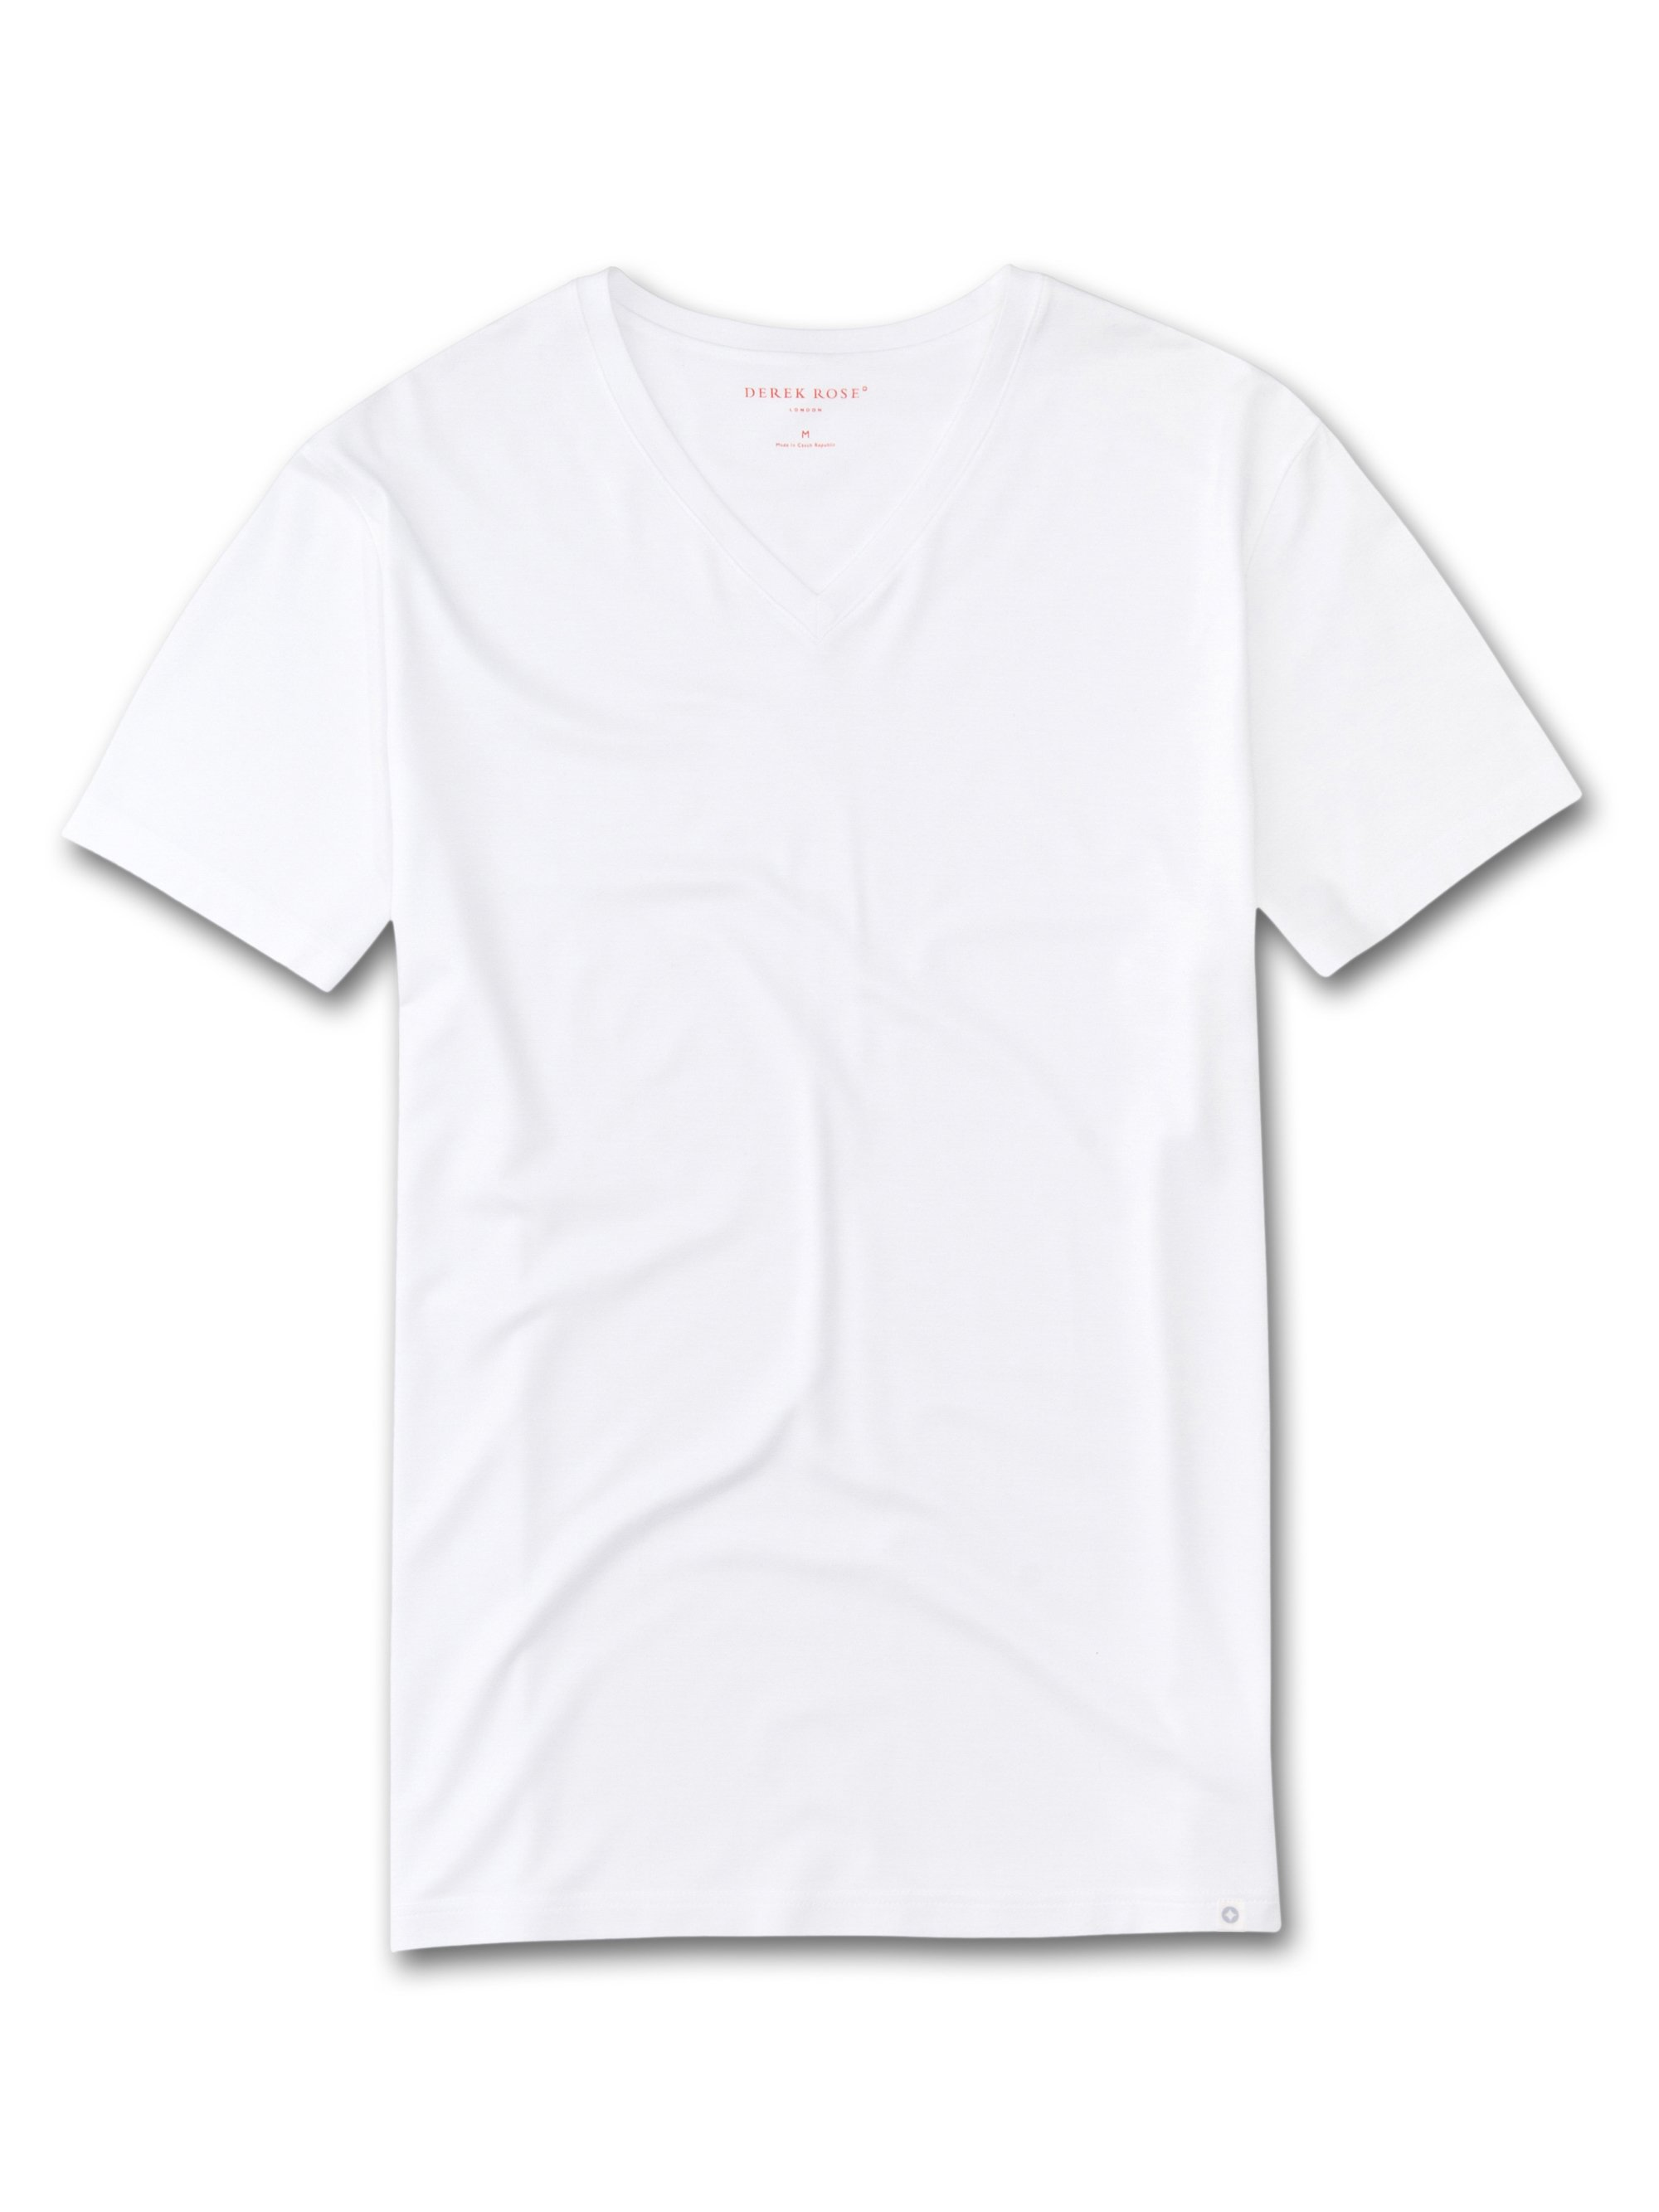 Derek Rose Men's Short Sleeve V-Neck T-Shirt — Basel Micro Modal Stretch White